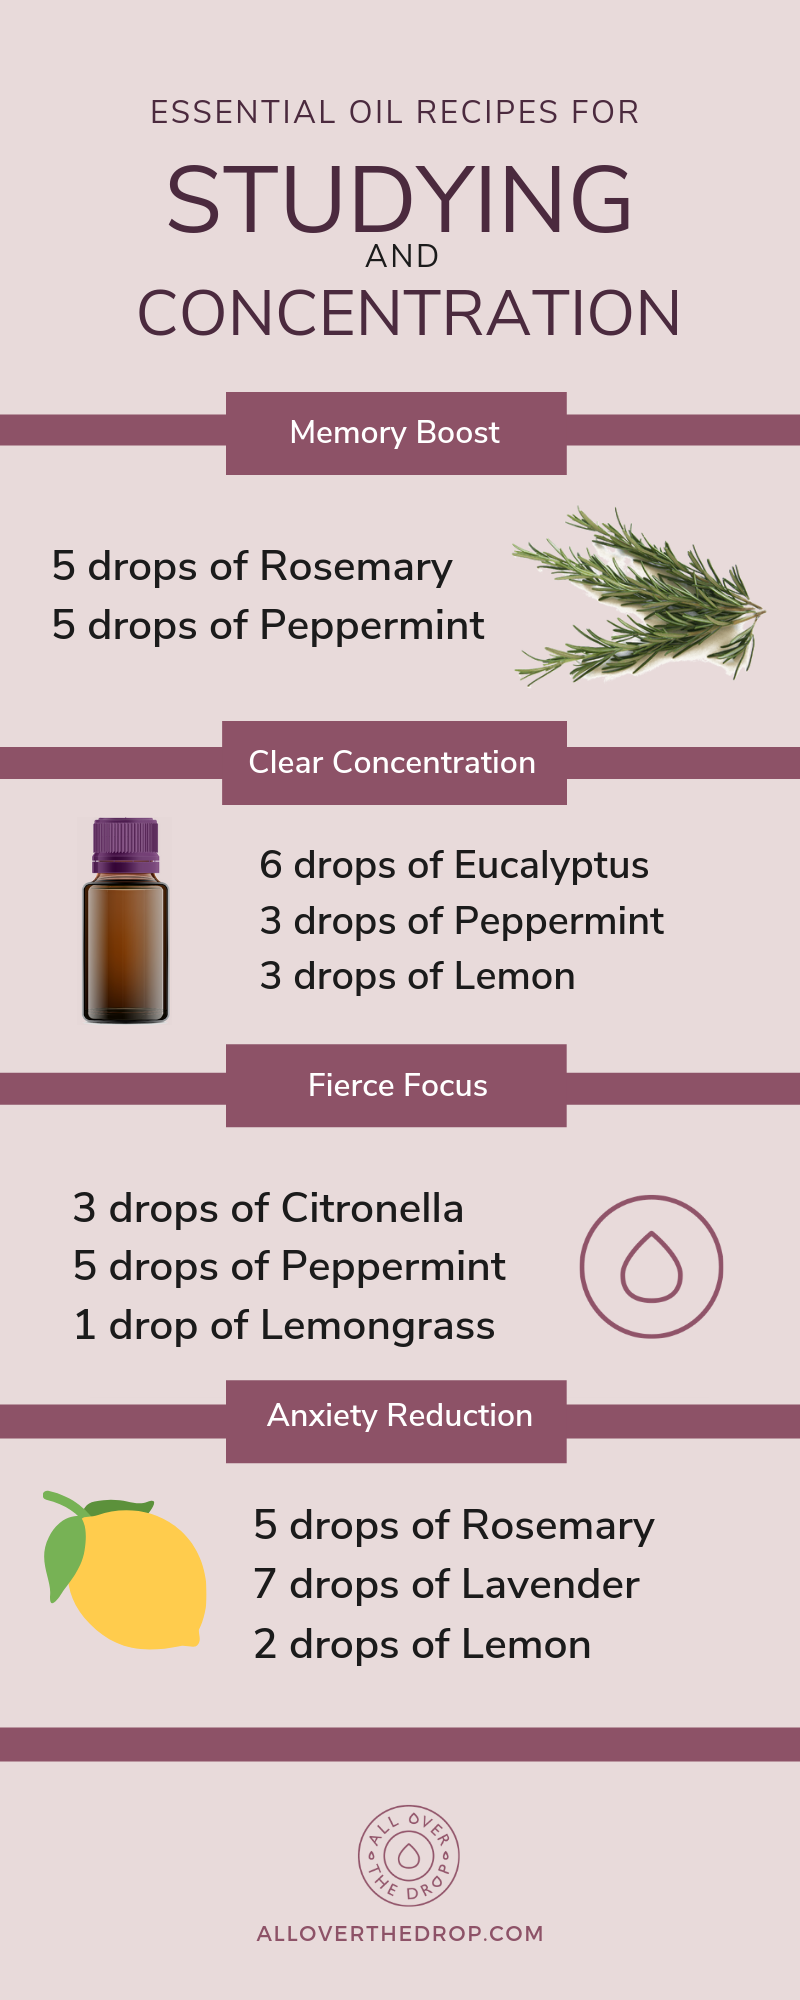 essential oils for studying and concentration infographic